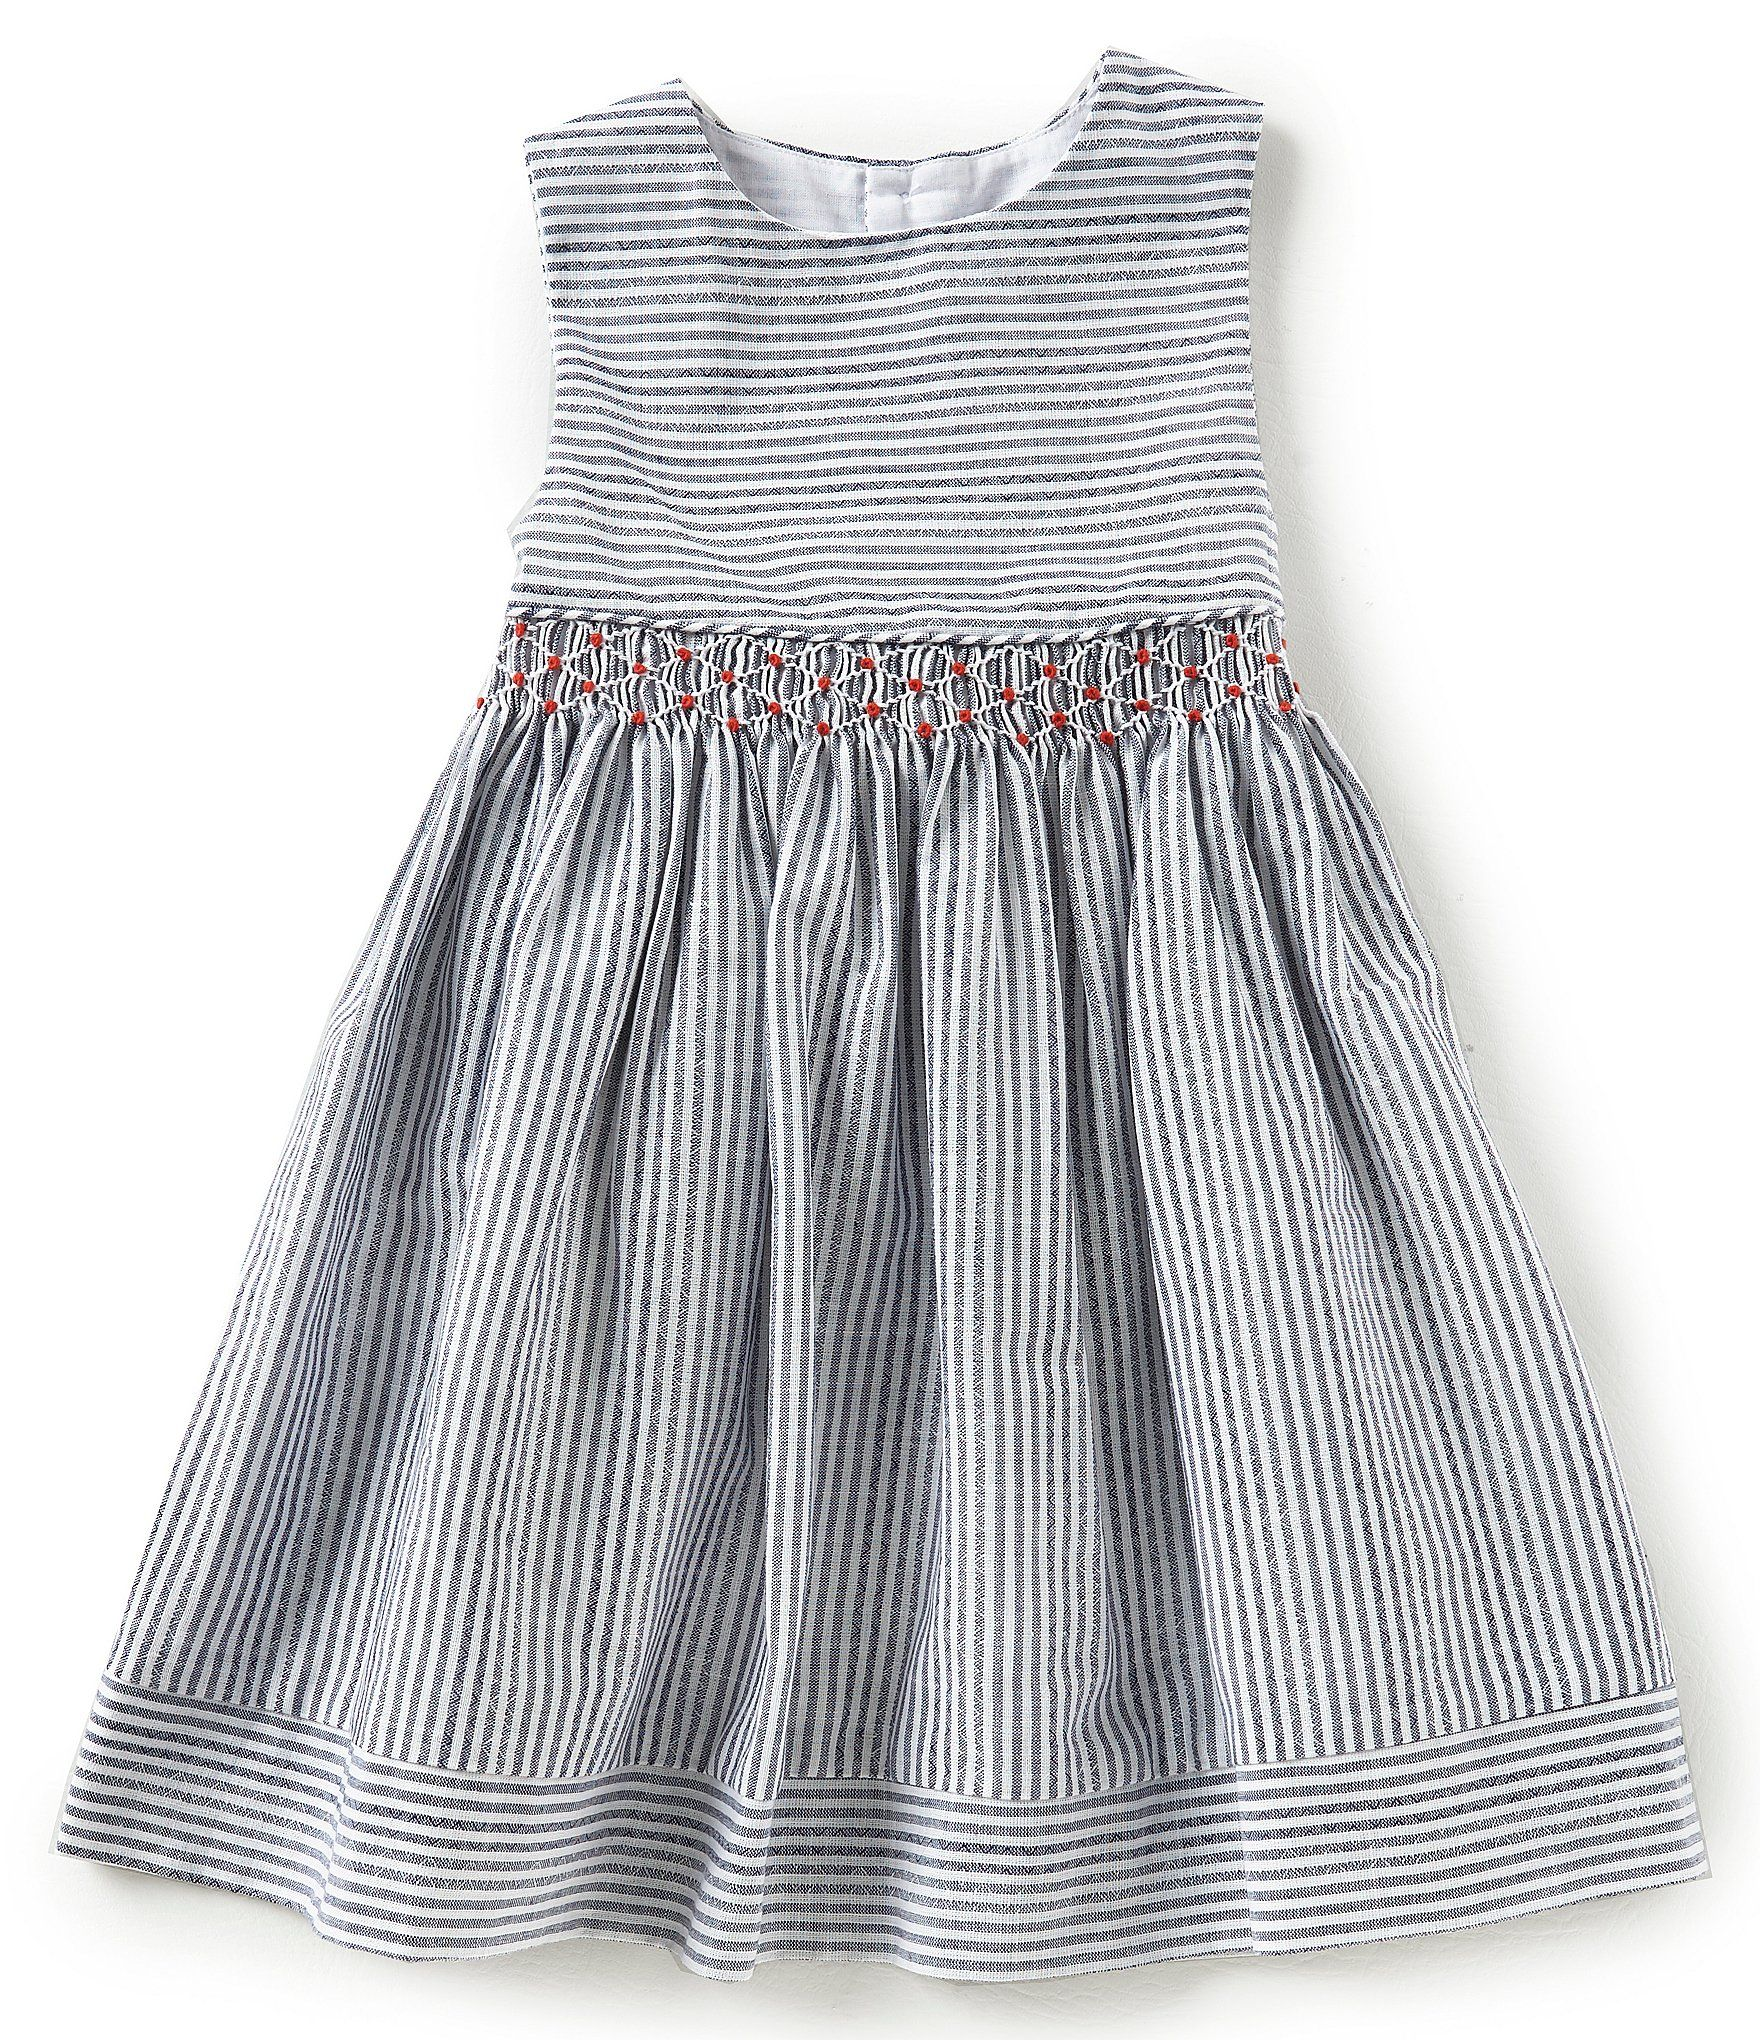 2e6e5eecb1f Shop for Edgehill Collection Little Girls 2T-6X Stripe Floral Smocked Dress  at Dillards.com. Visit Dillards.com to find clothing